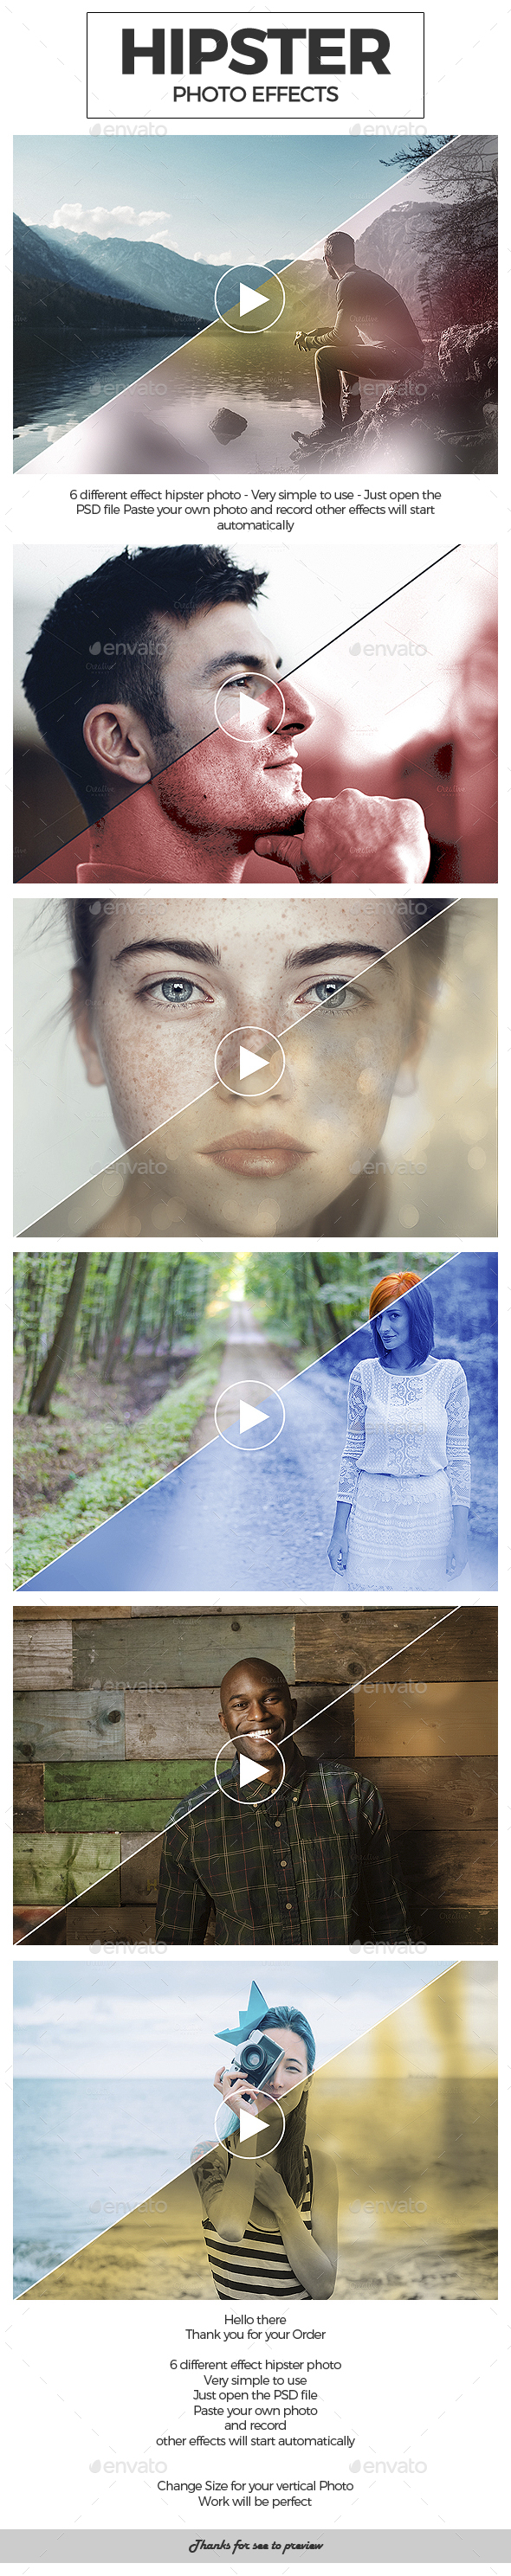 Hipster Photo Effects - Photo Templates Graphics